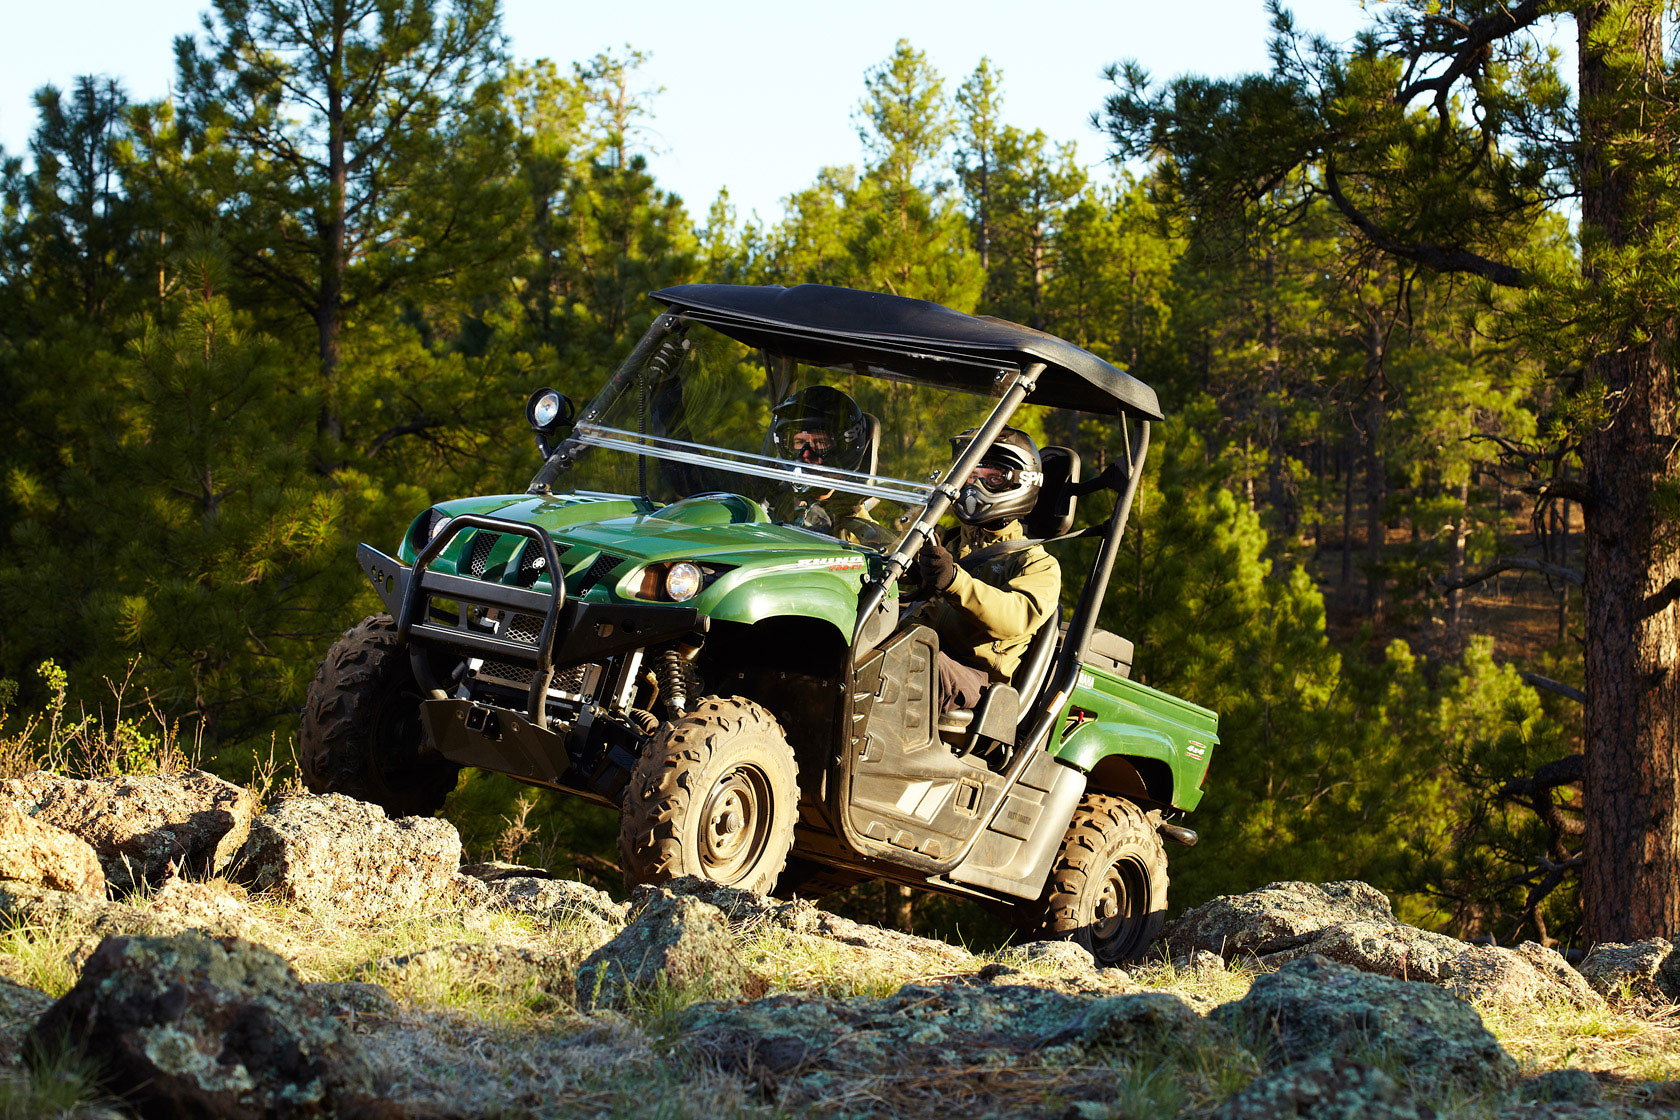 2012 yamaha rhino 700 fi auto 4x4 review. Black Bedroom Furniture Sets. Home Design Ideas